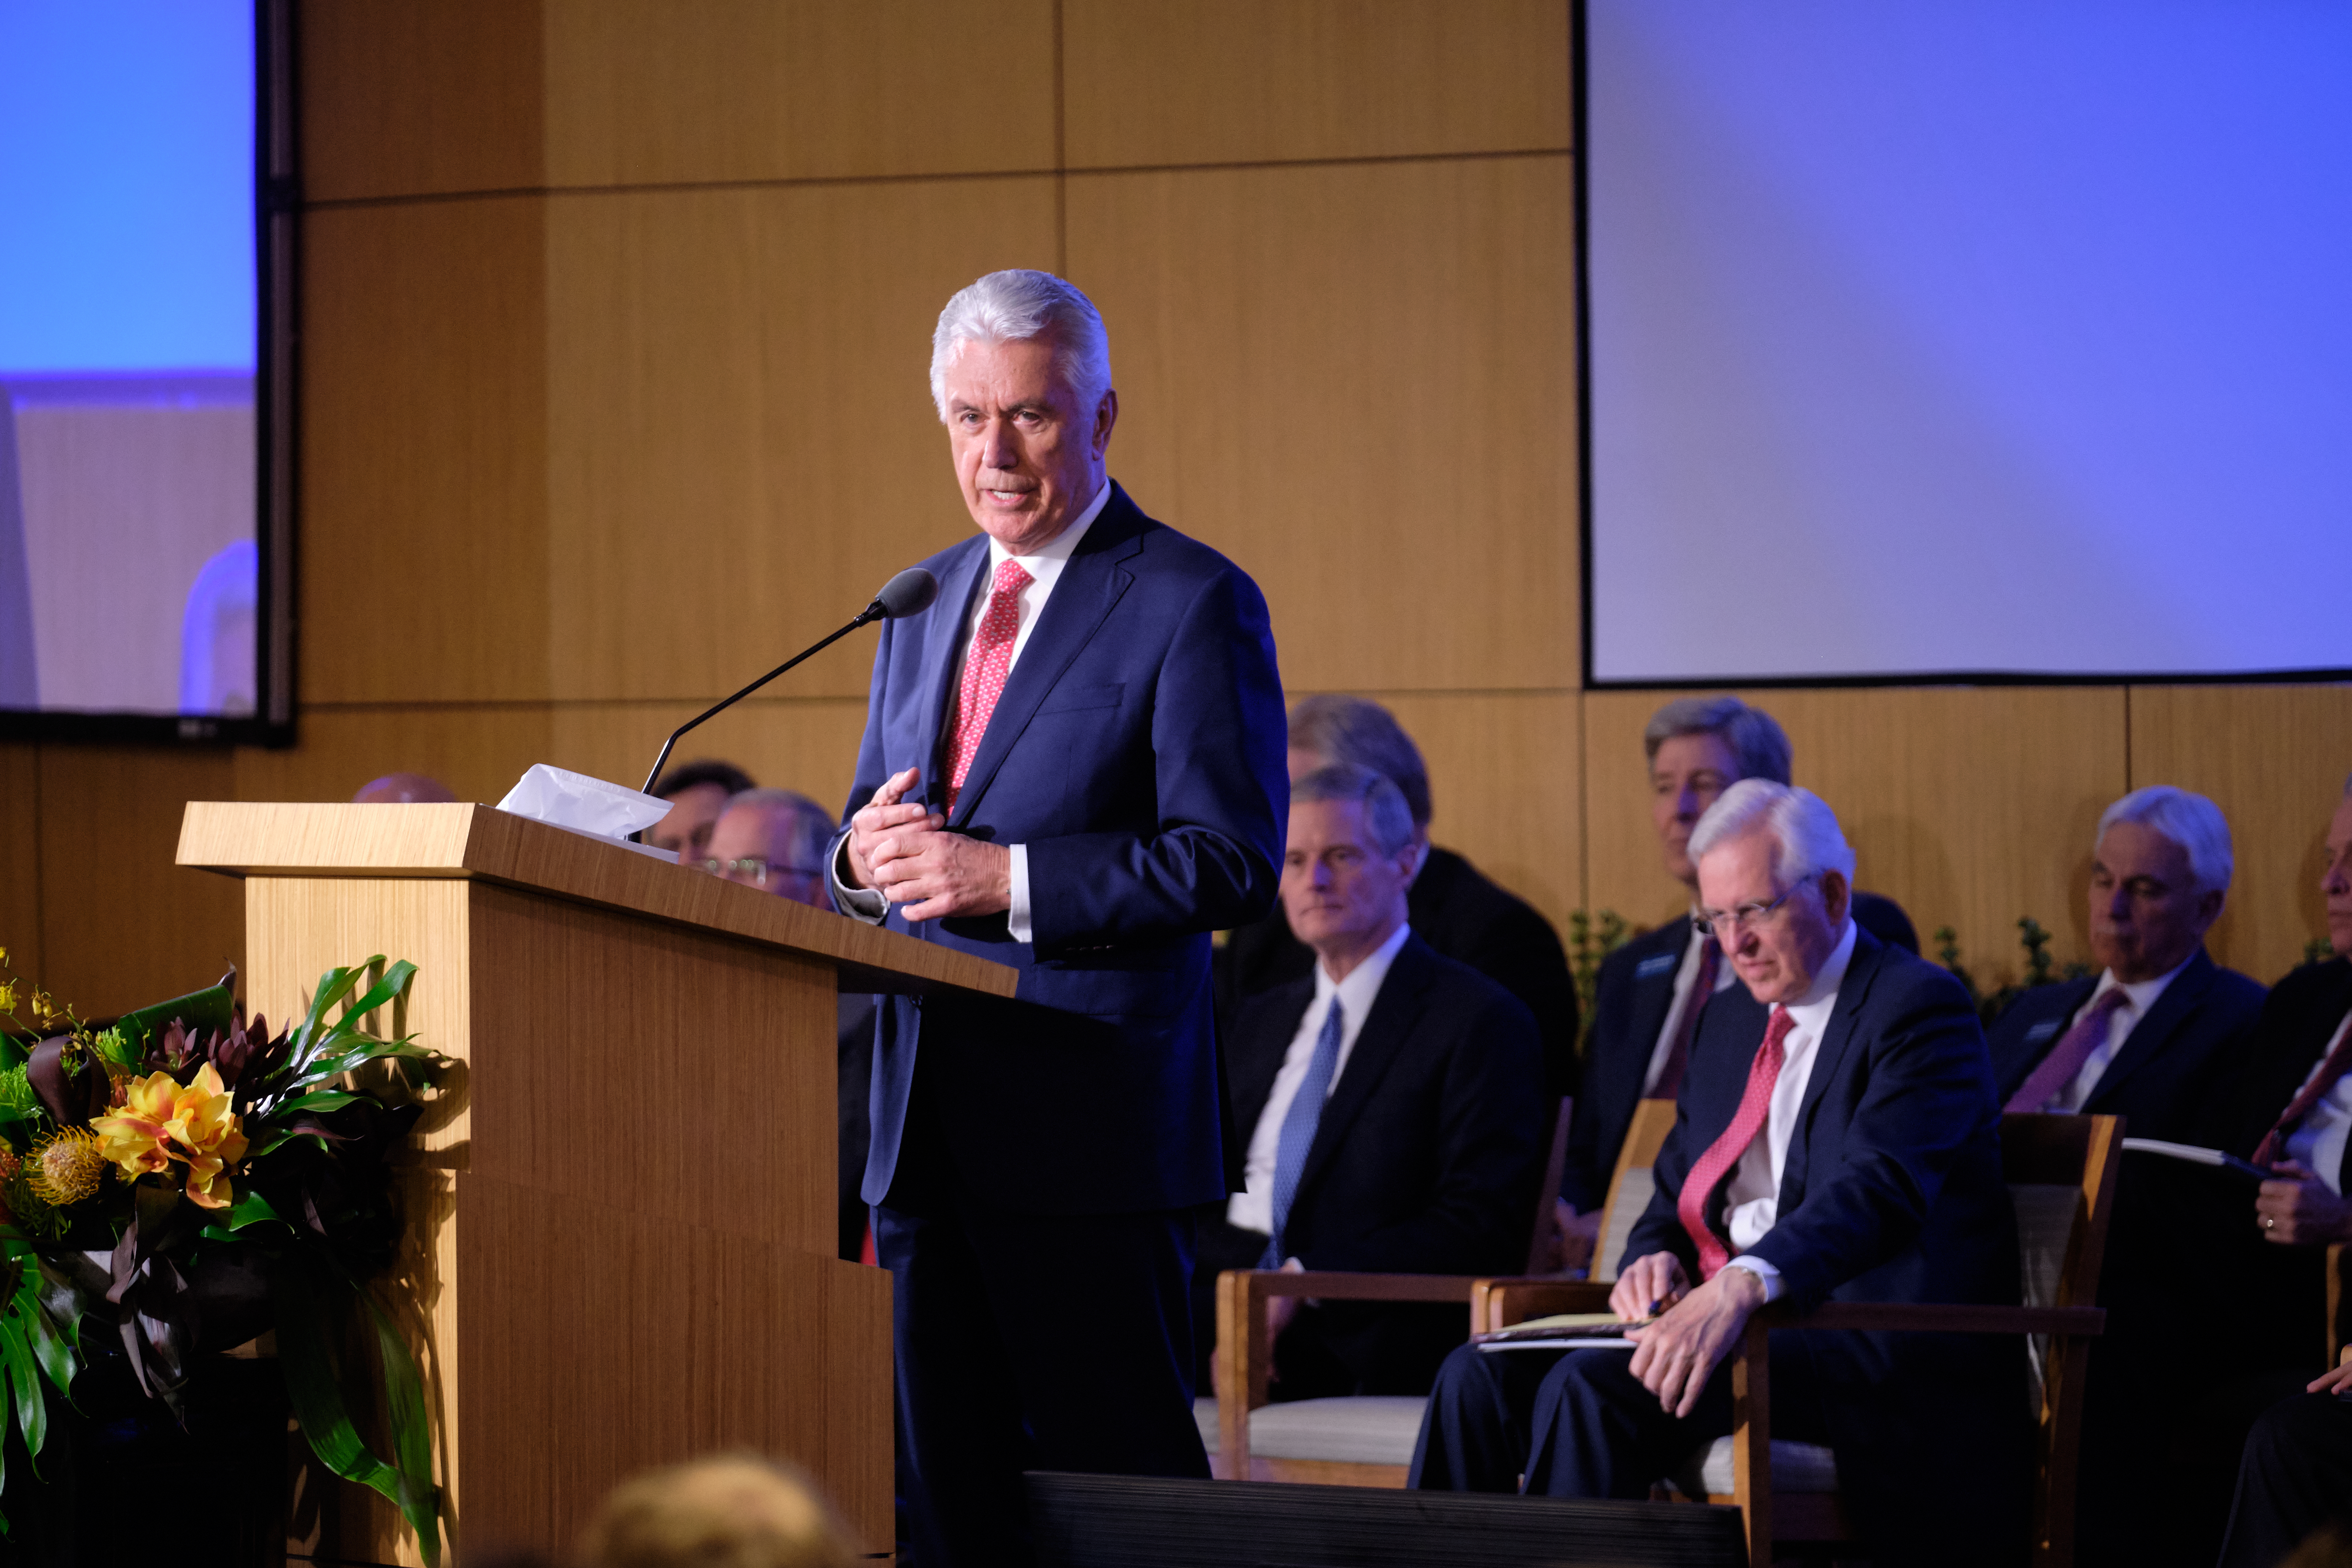 Elder Dieter F. Uchtdorf, of the Quorum of the Twelve Apostles and chairman of the Missionary Executive Council, offers concluding remarks Tuesday, June 25, 2019, at the New Mission Leadership Seminar held at the Provo Missionary Training Center in Provo, Utah.